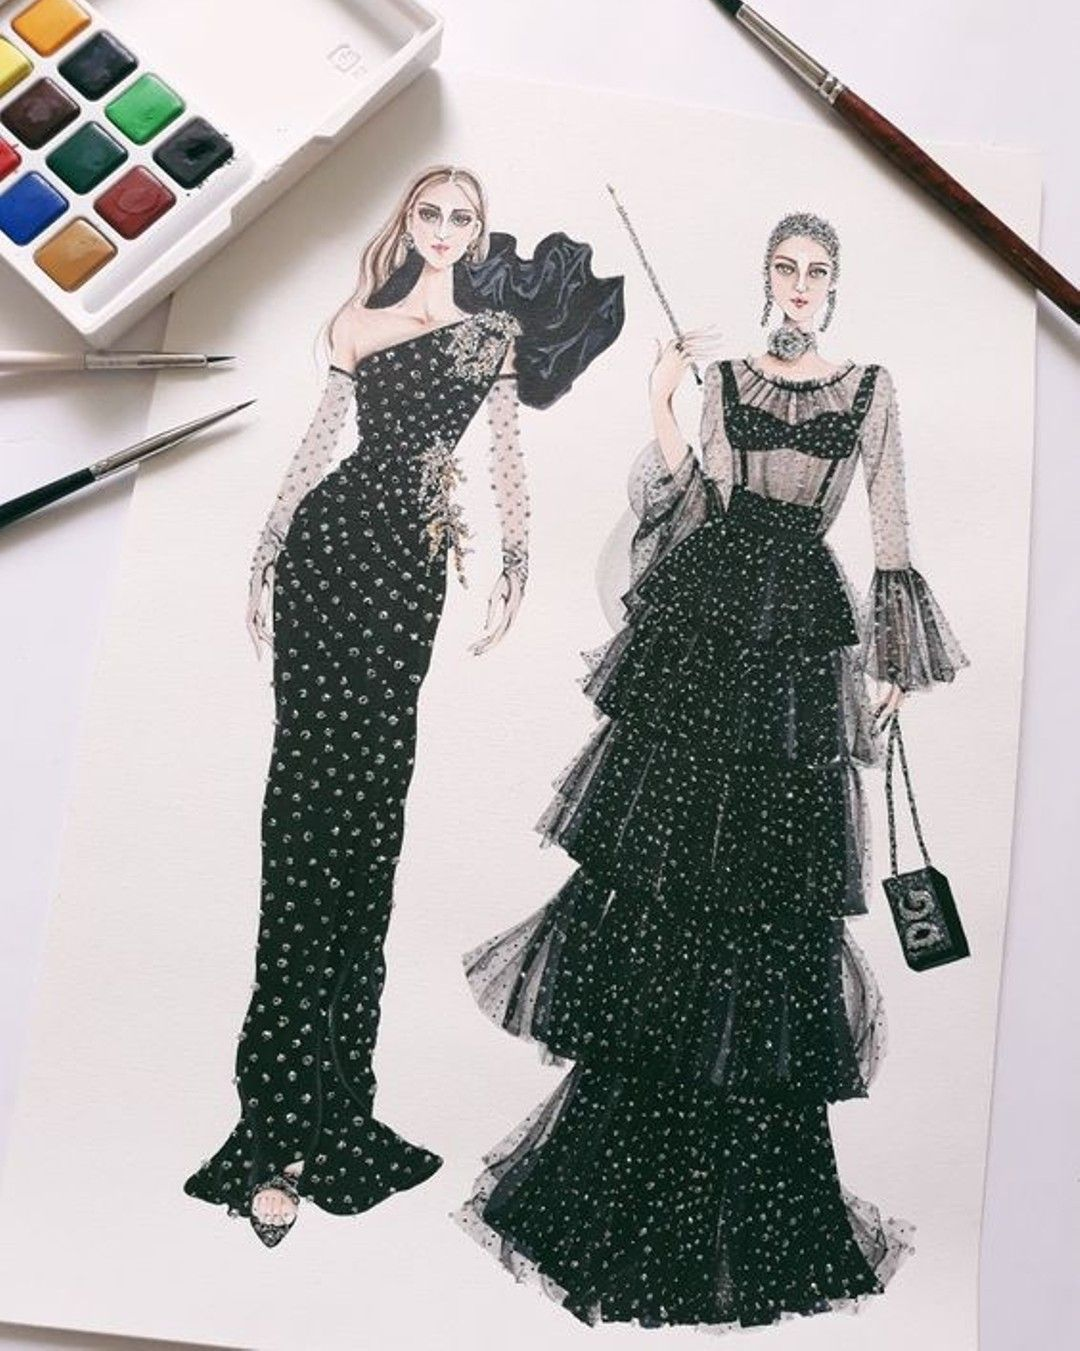 La Imagen Puede Contener 2 Personas Fashion Art Illustration Illustration Fashion Design Fashion Sketches Dresses